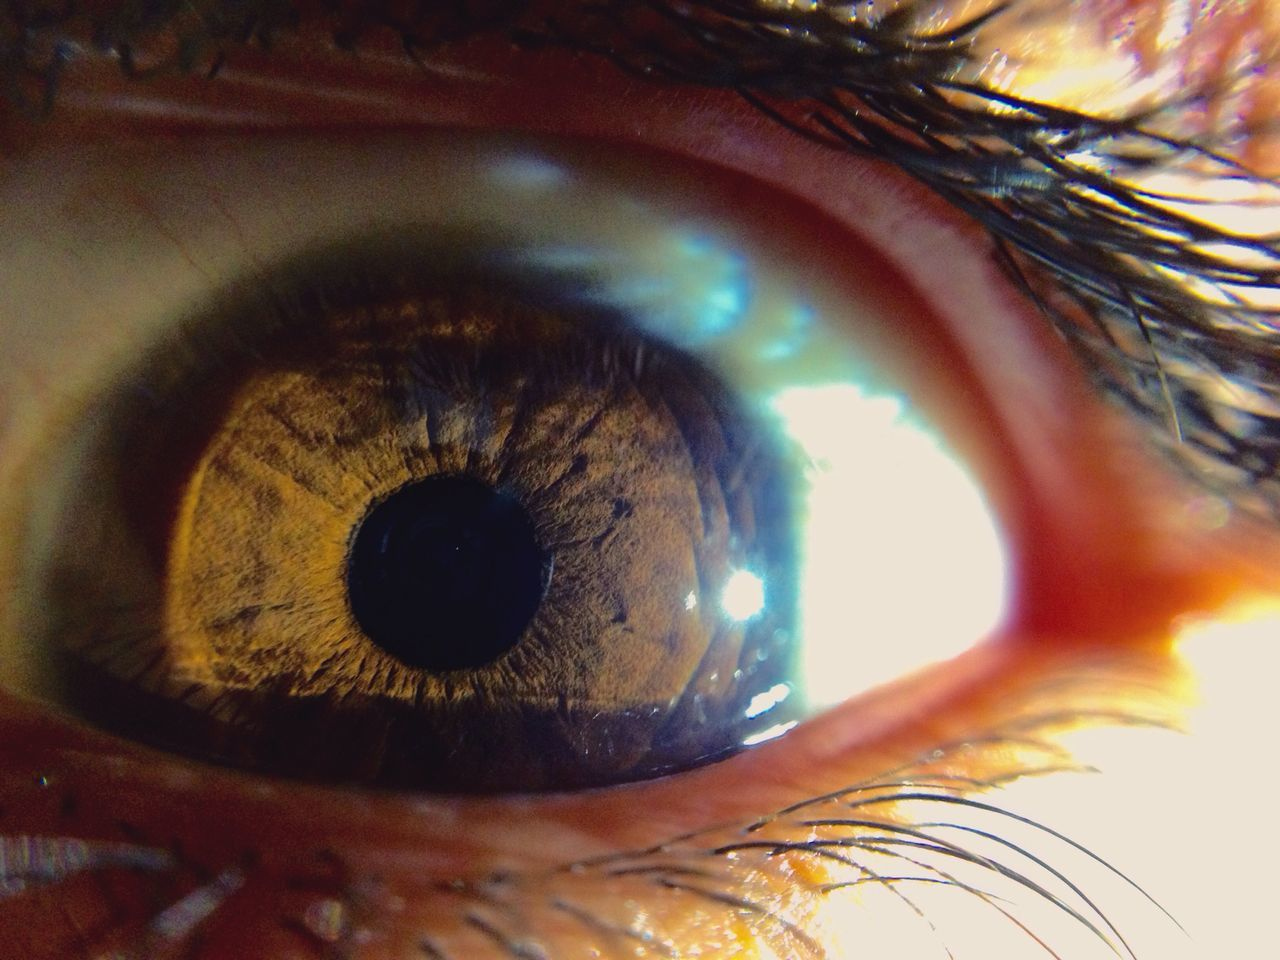 Human Eye Sensory Perception Eyelash Eyesight Macro Iris - Eye Extreme Close-up Unrecognizable Person Human Body Part Close-up One Person Eyeball Real People One Woman Only People Vision Outdoors Adults Only Day Adult